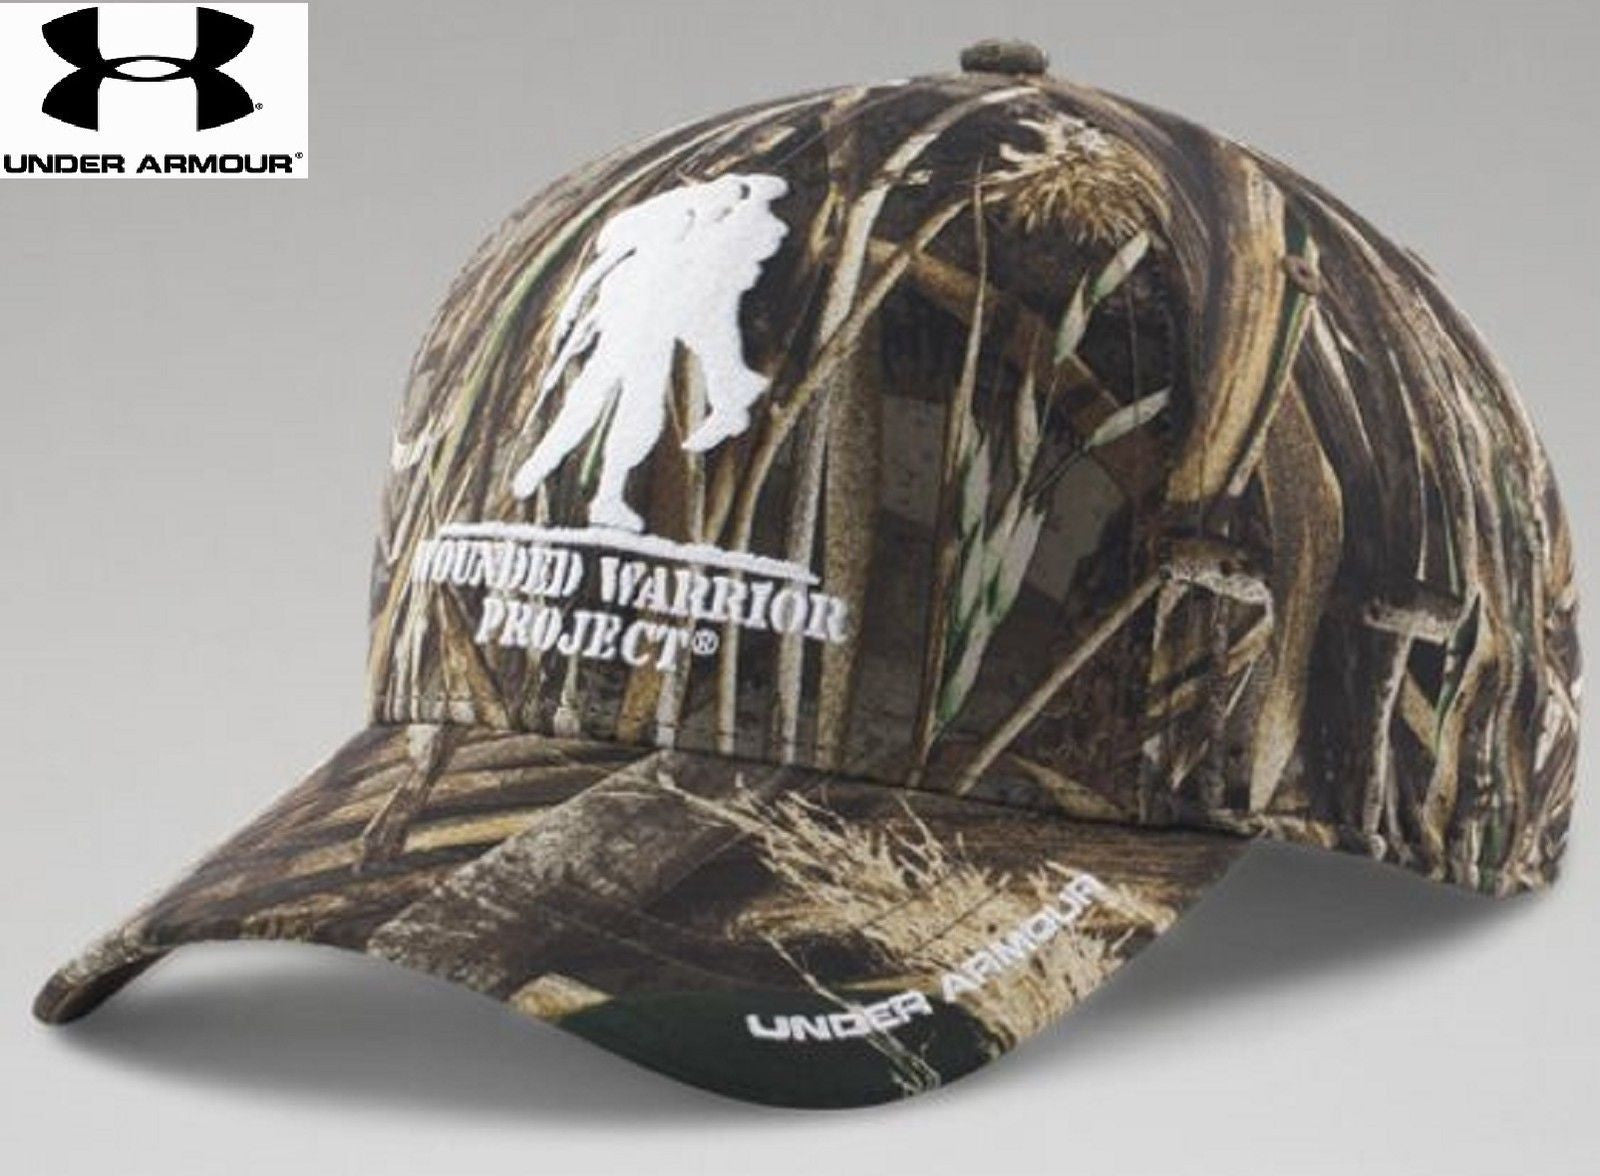 ... Under Armour Wounded Warrior Project Camo Snap Cap - Mens UA  Embroidered WWP Hat Realtree MAX5 ... 0c8e405f2988